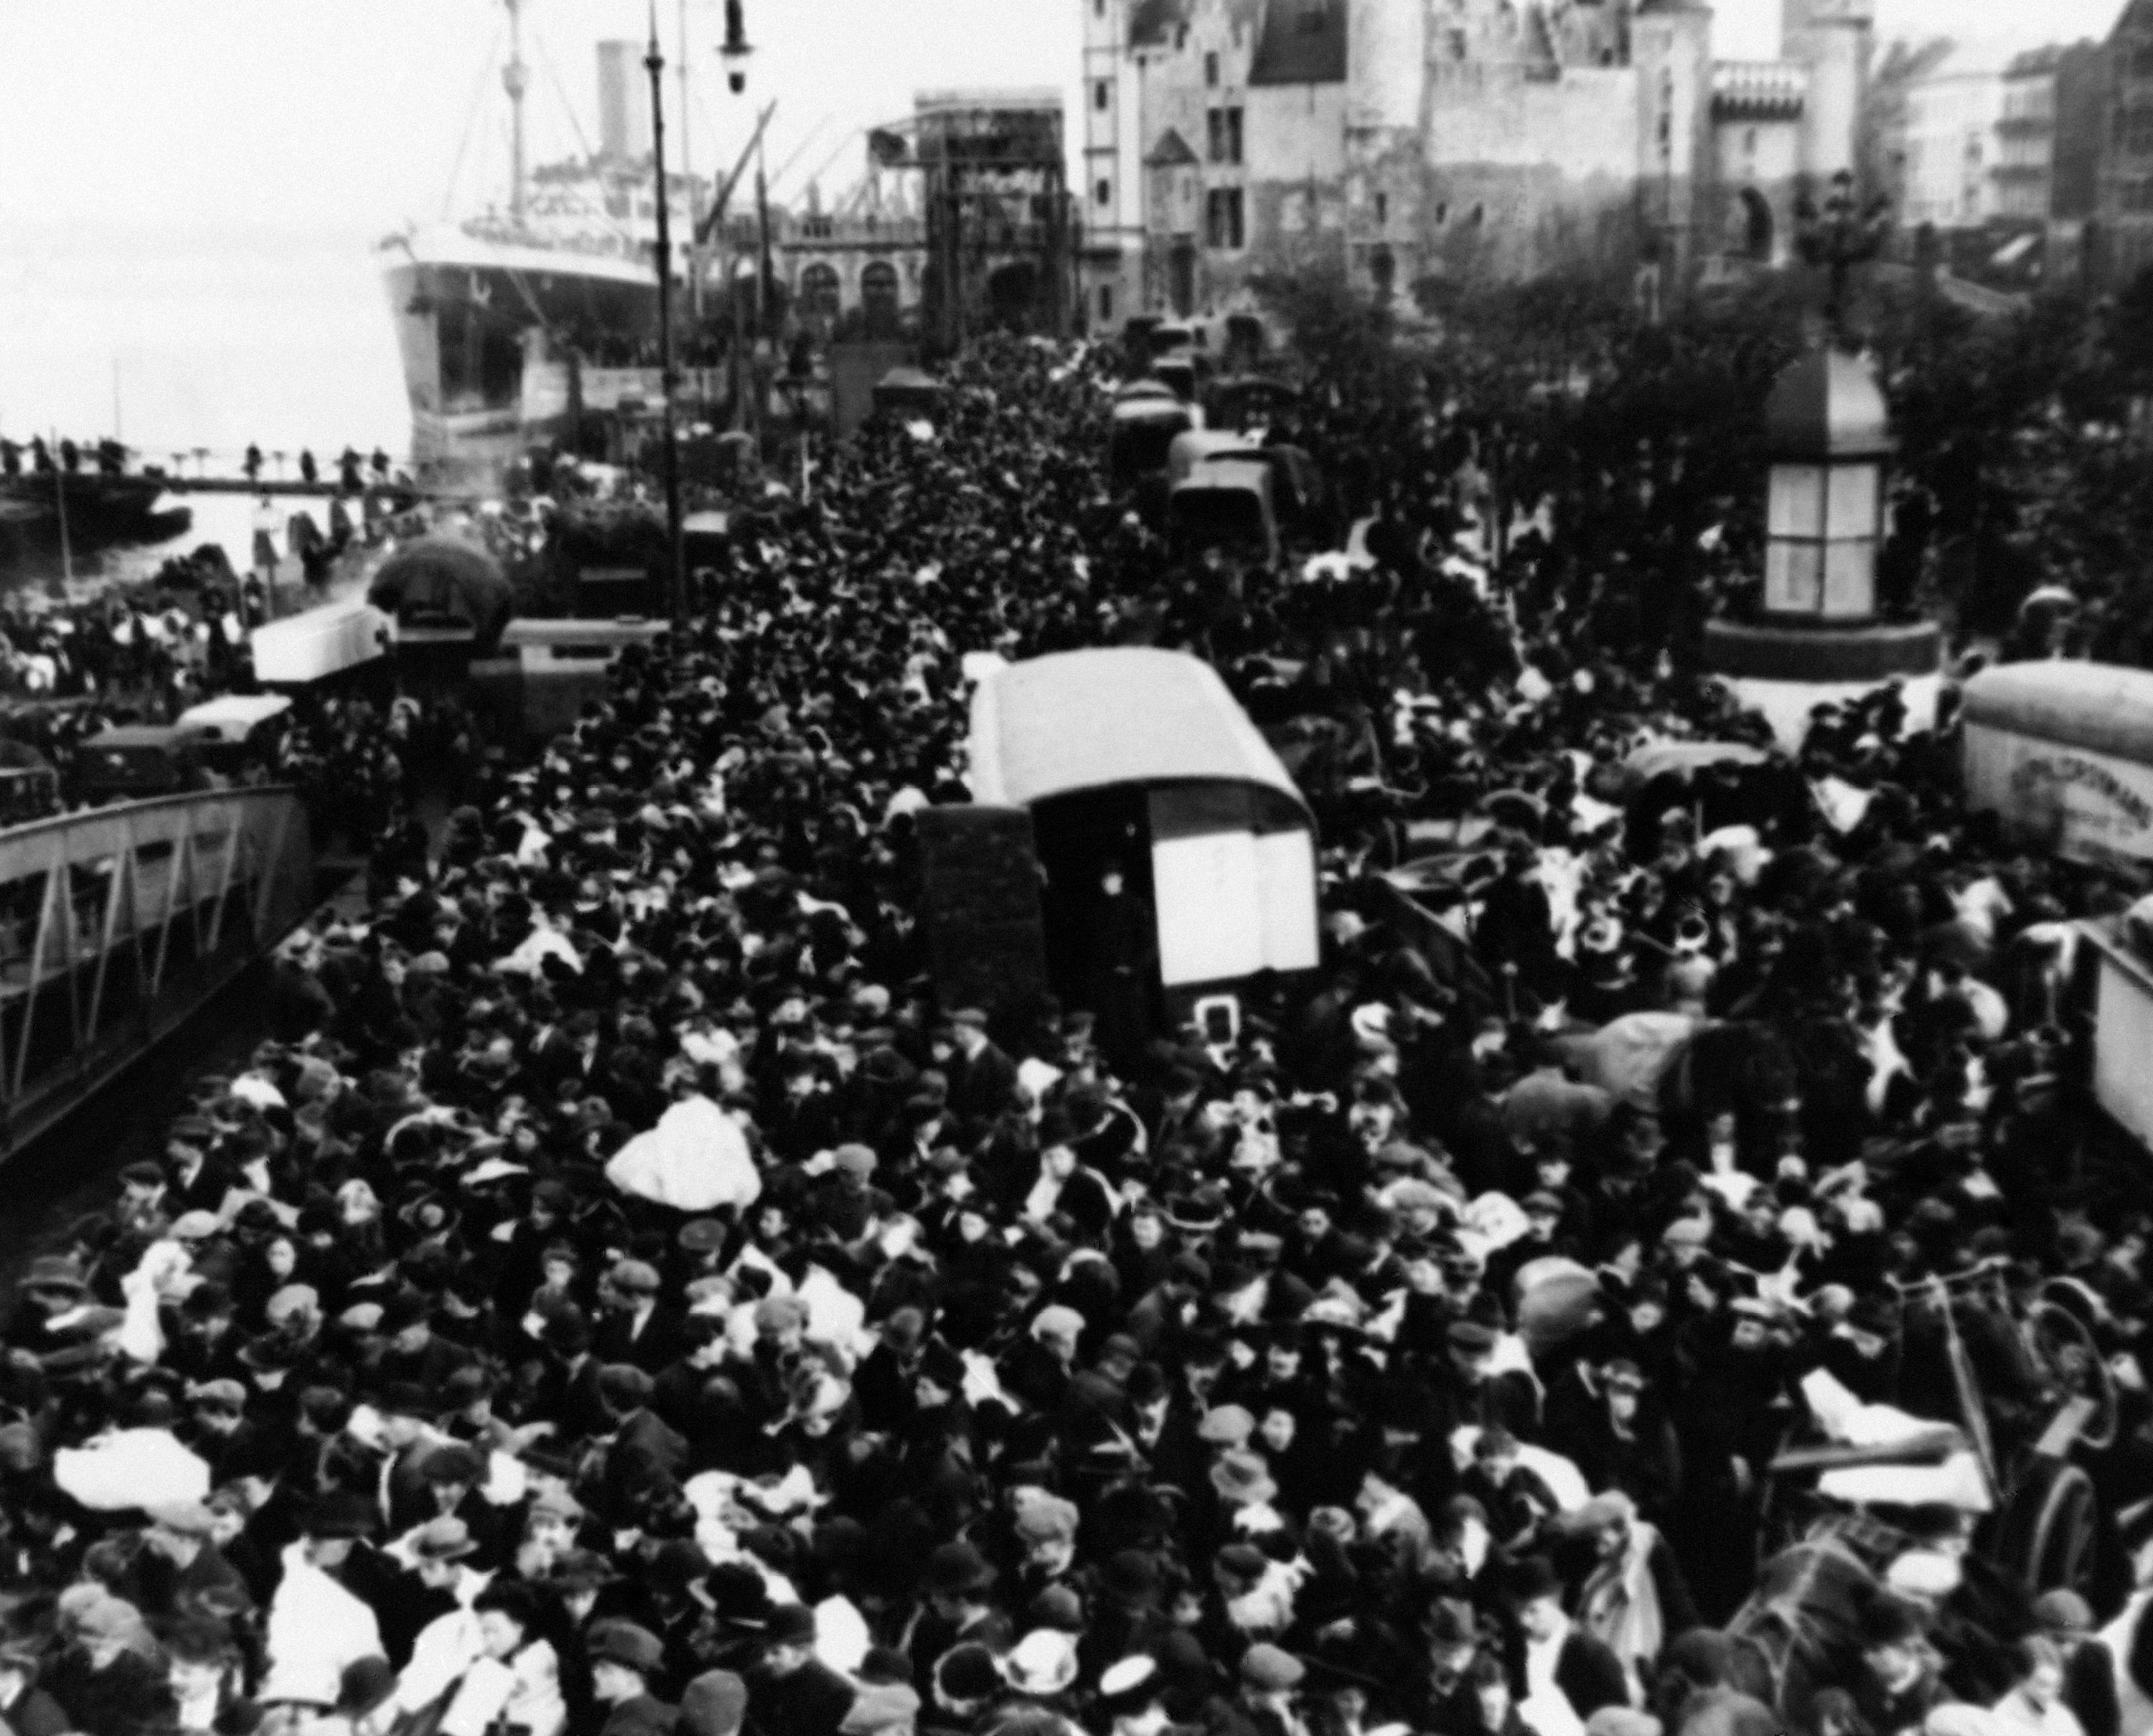 18 OF 100: In this October 1914 file photo, people crowd the Antwerp quaysides as they prepare for an exodus out of the city during World War I.